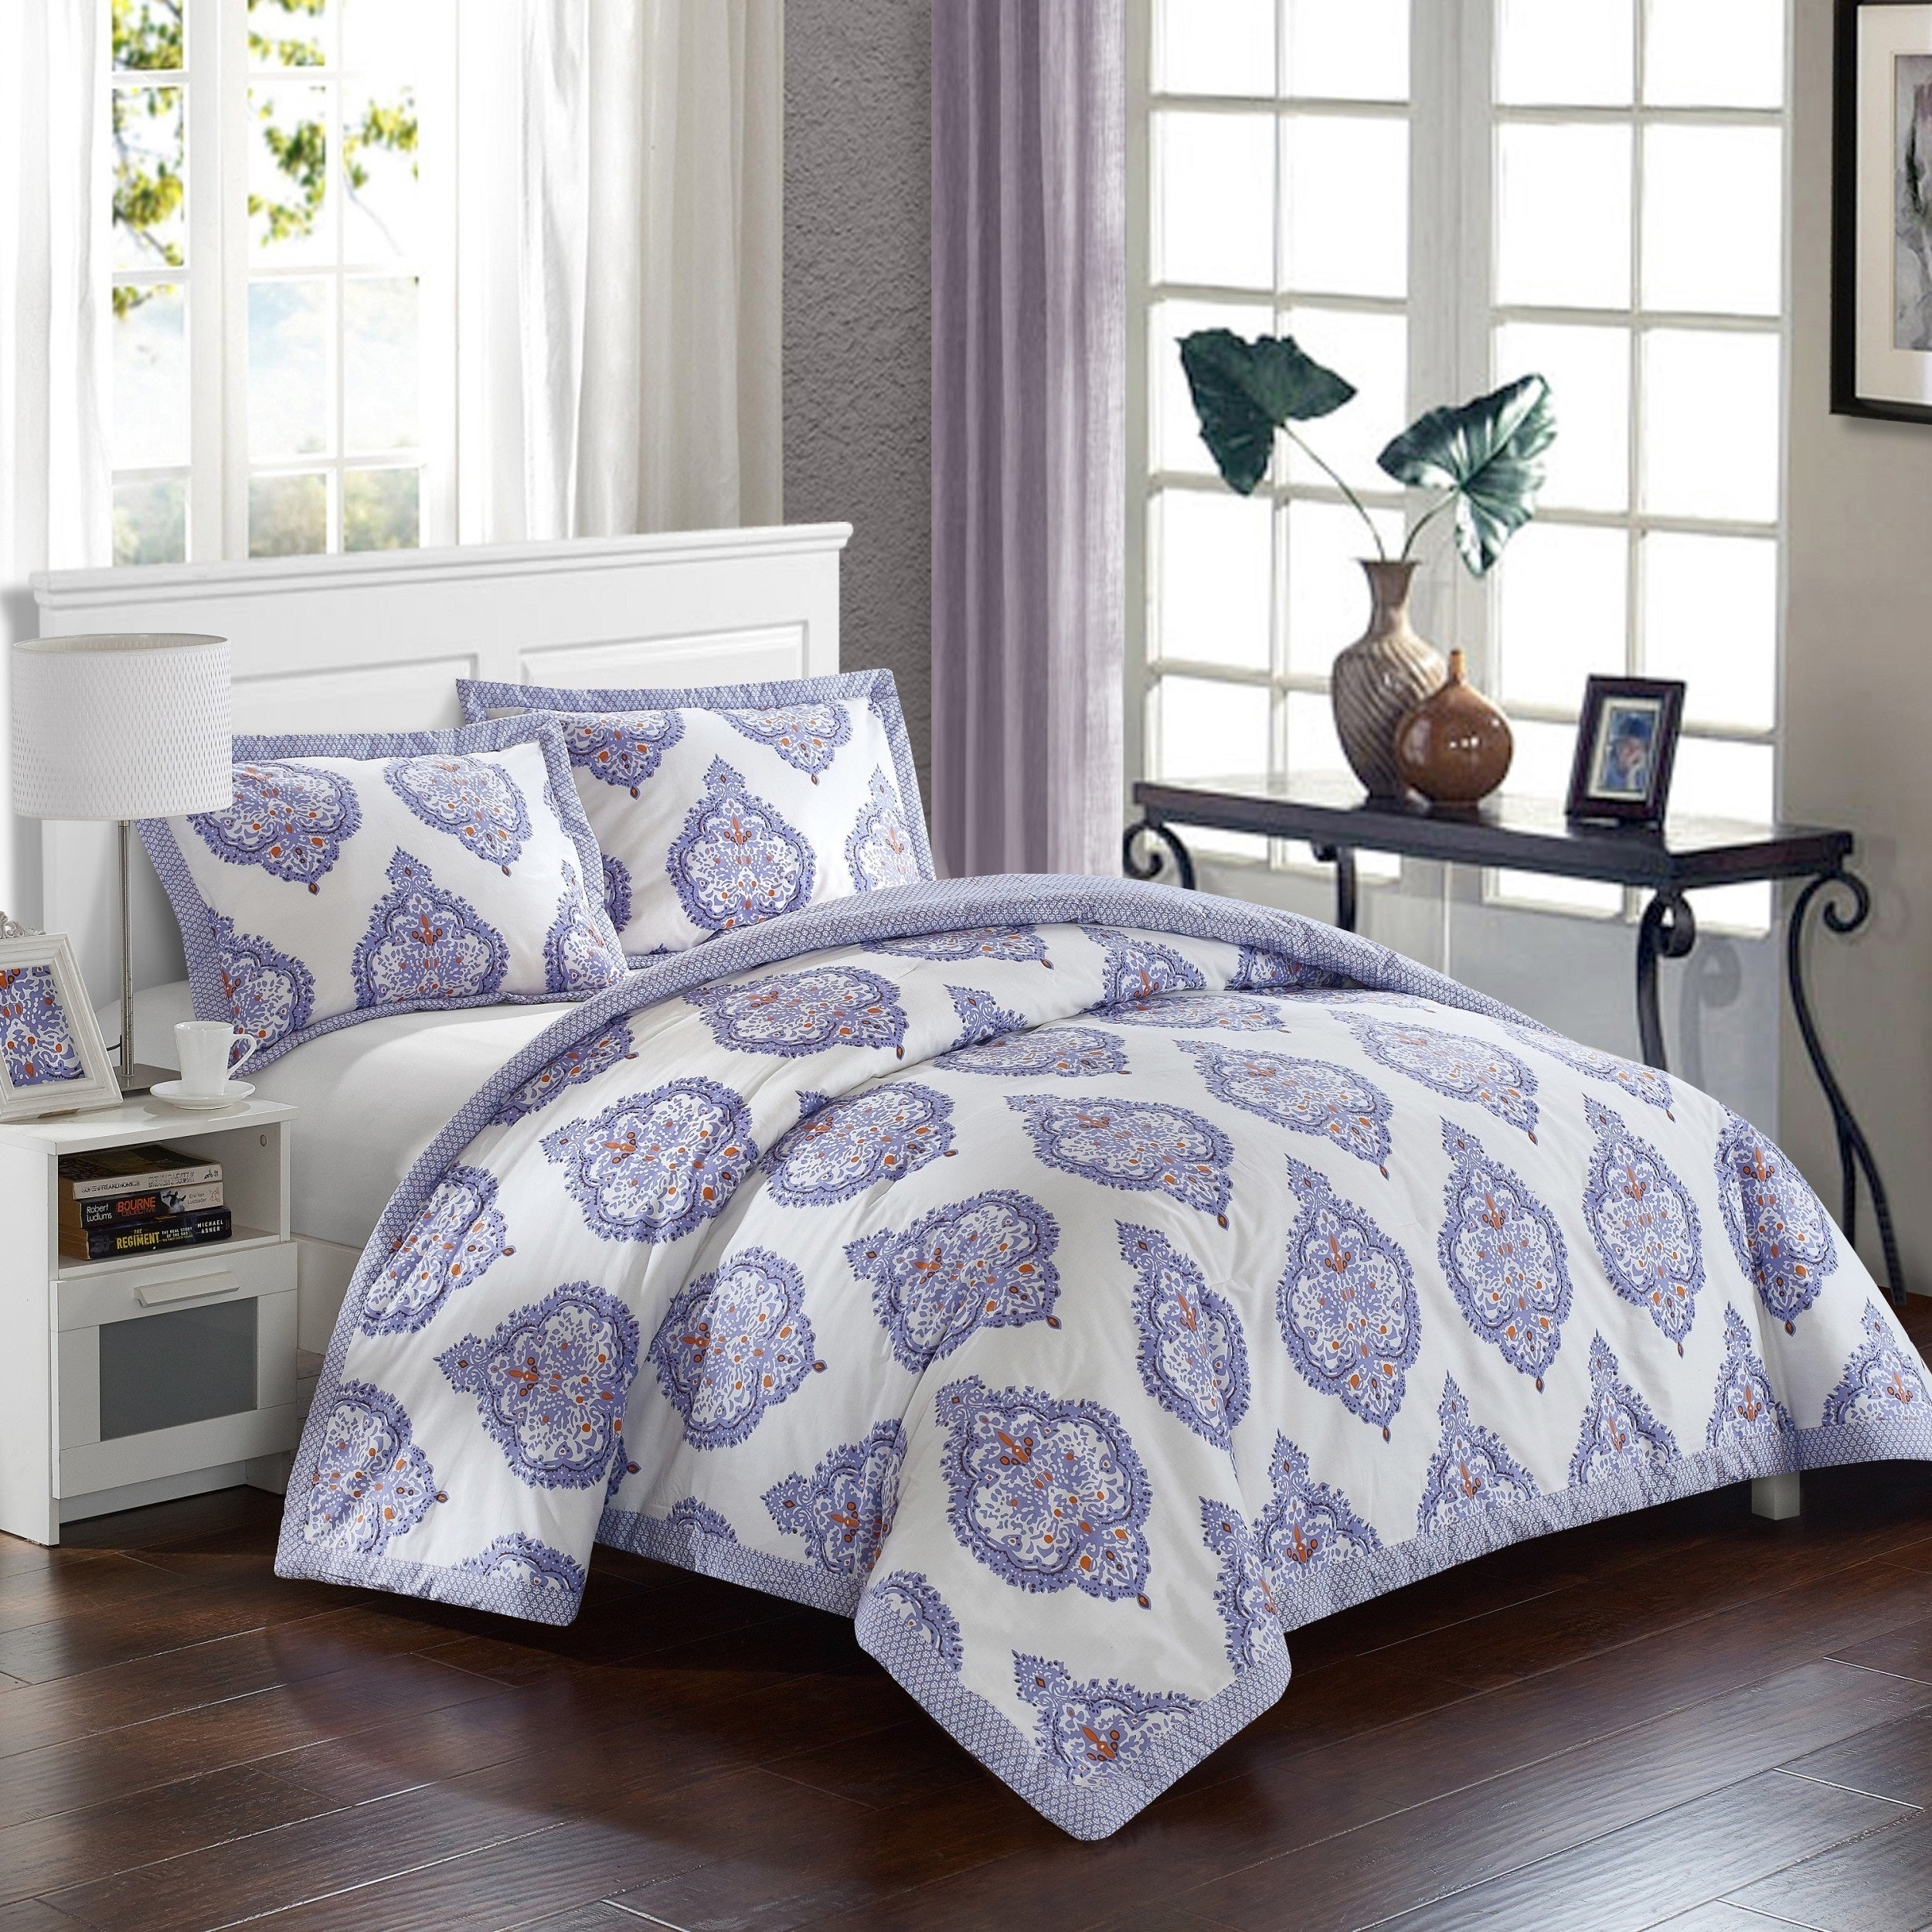 Shop lux bed cotton 3 piece bergen palace lavender duvet cover set on sale free shipping today overstock com 14140170